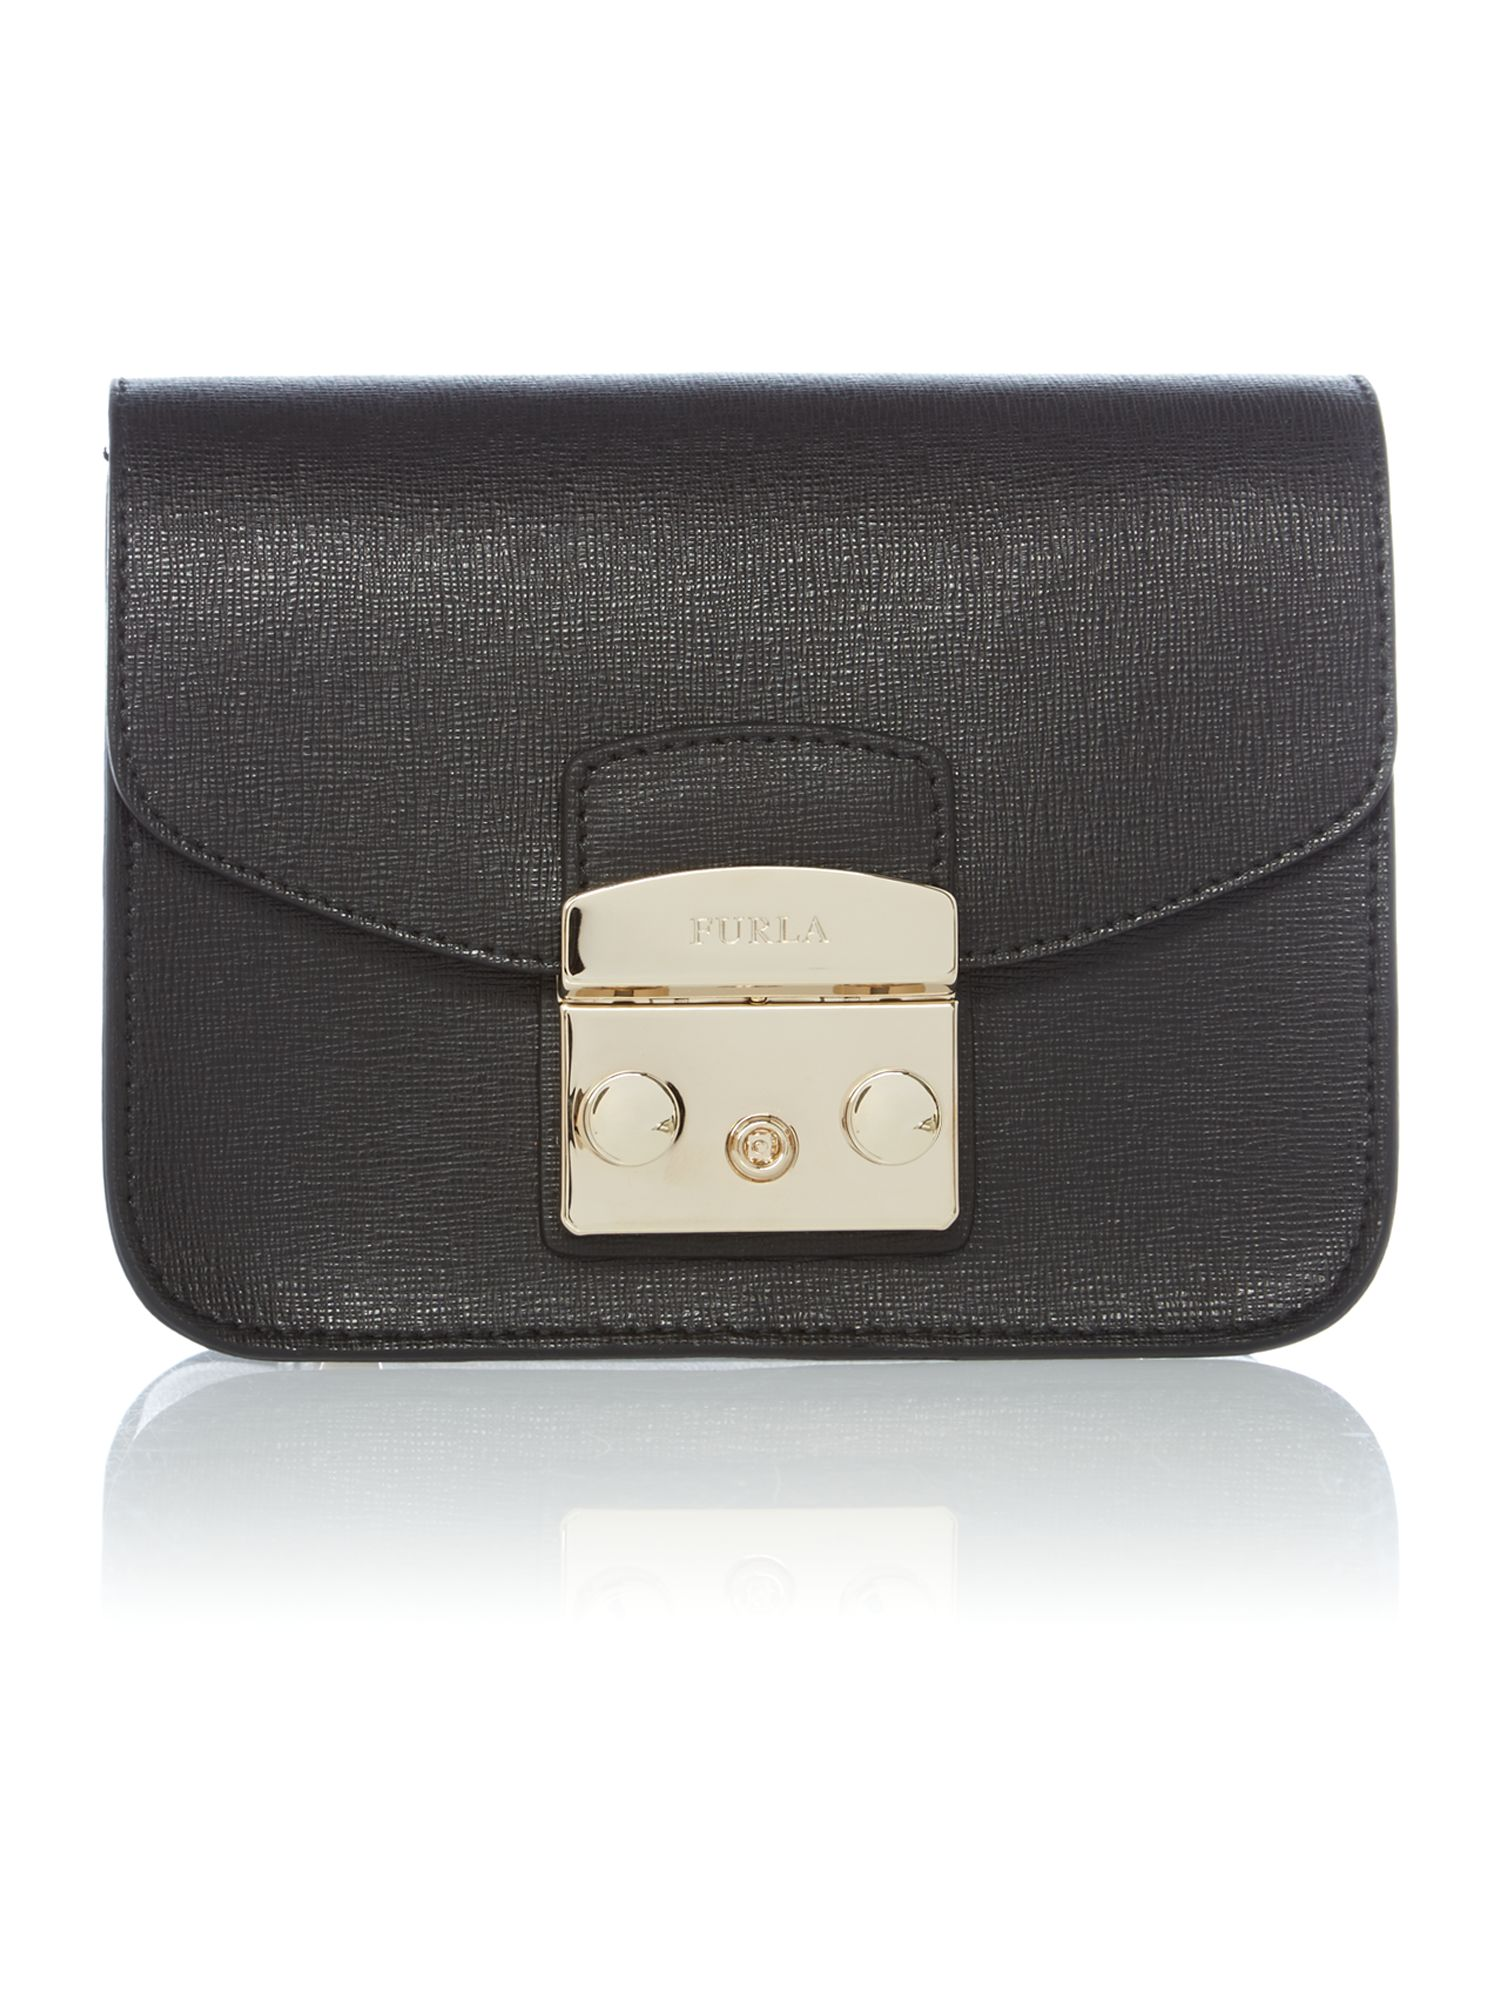 Metropolis black small shoulder bag